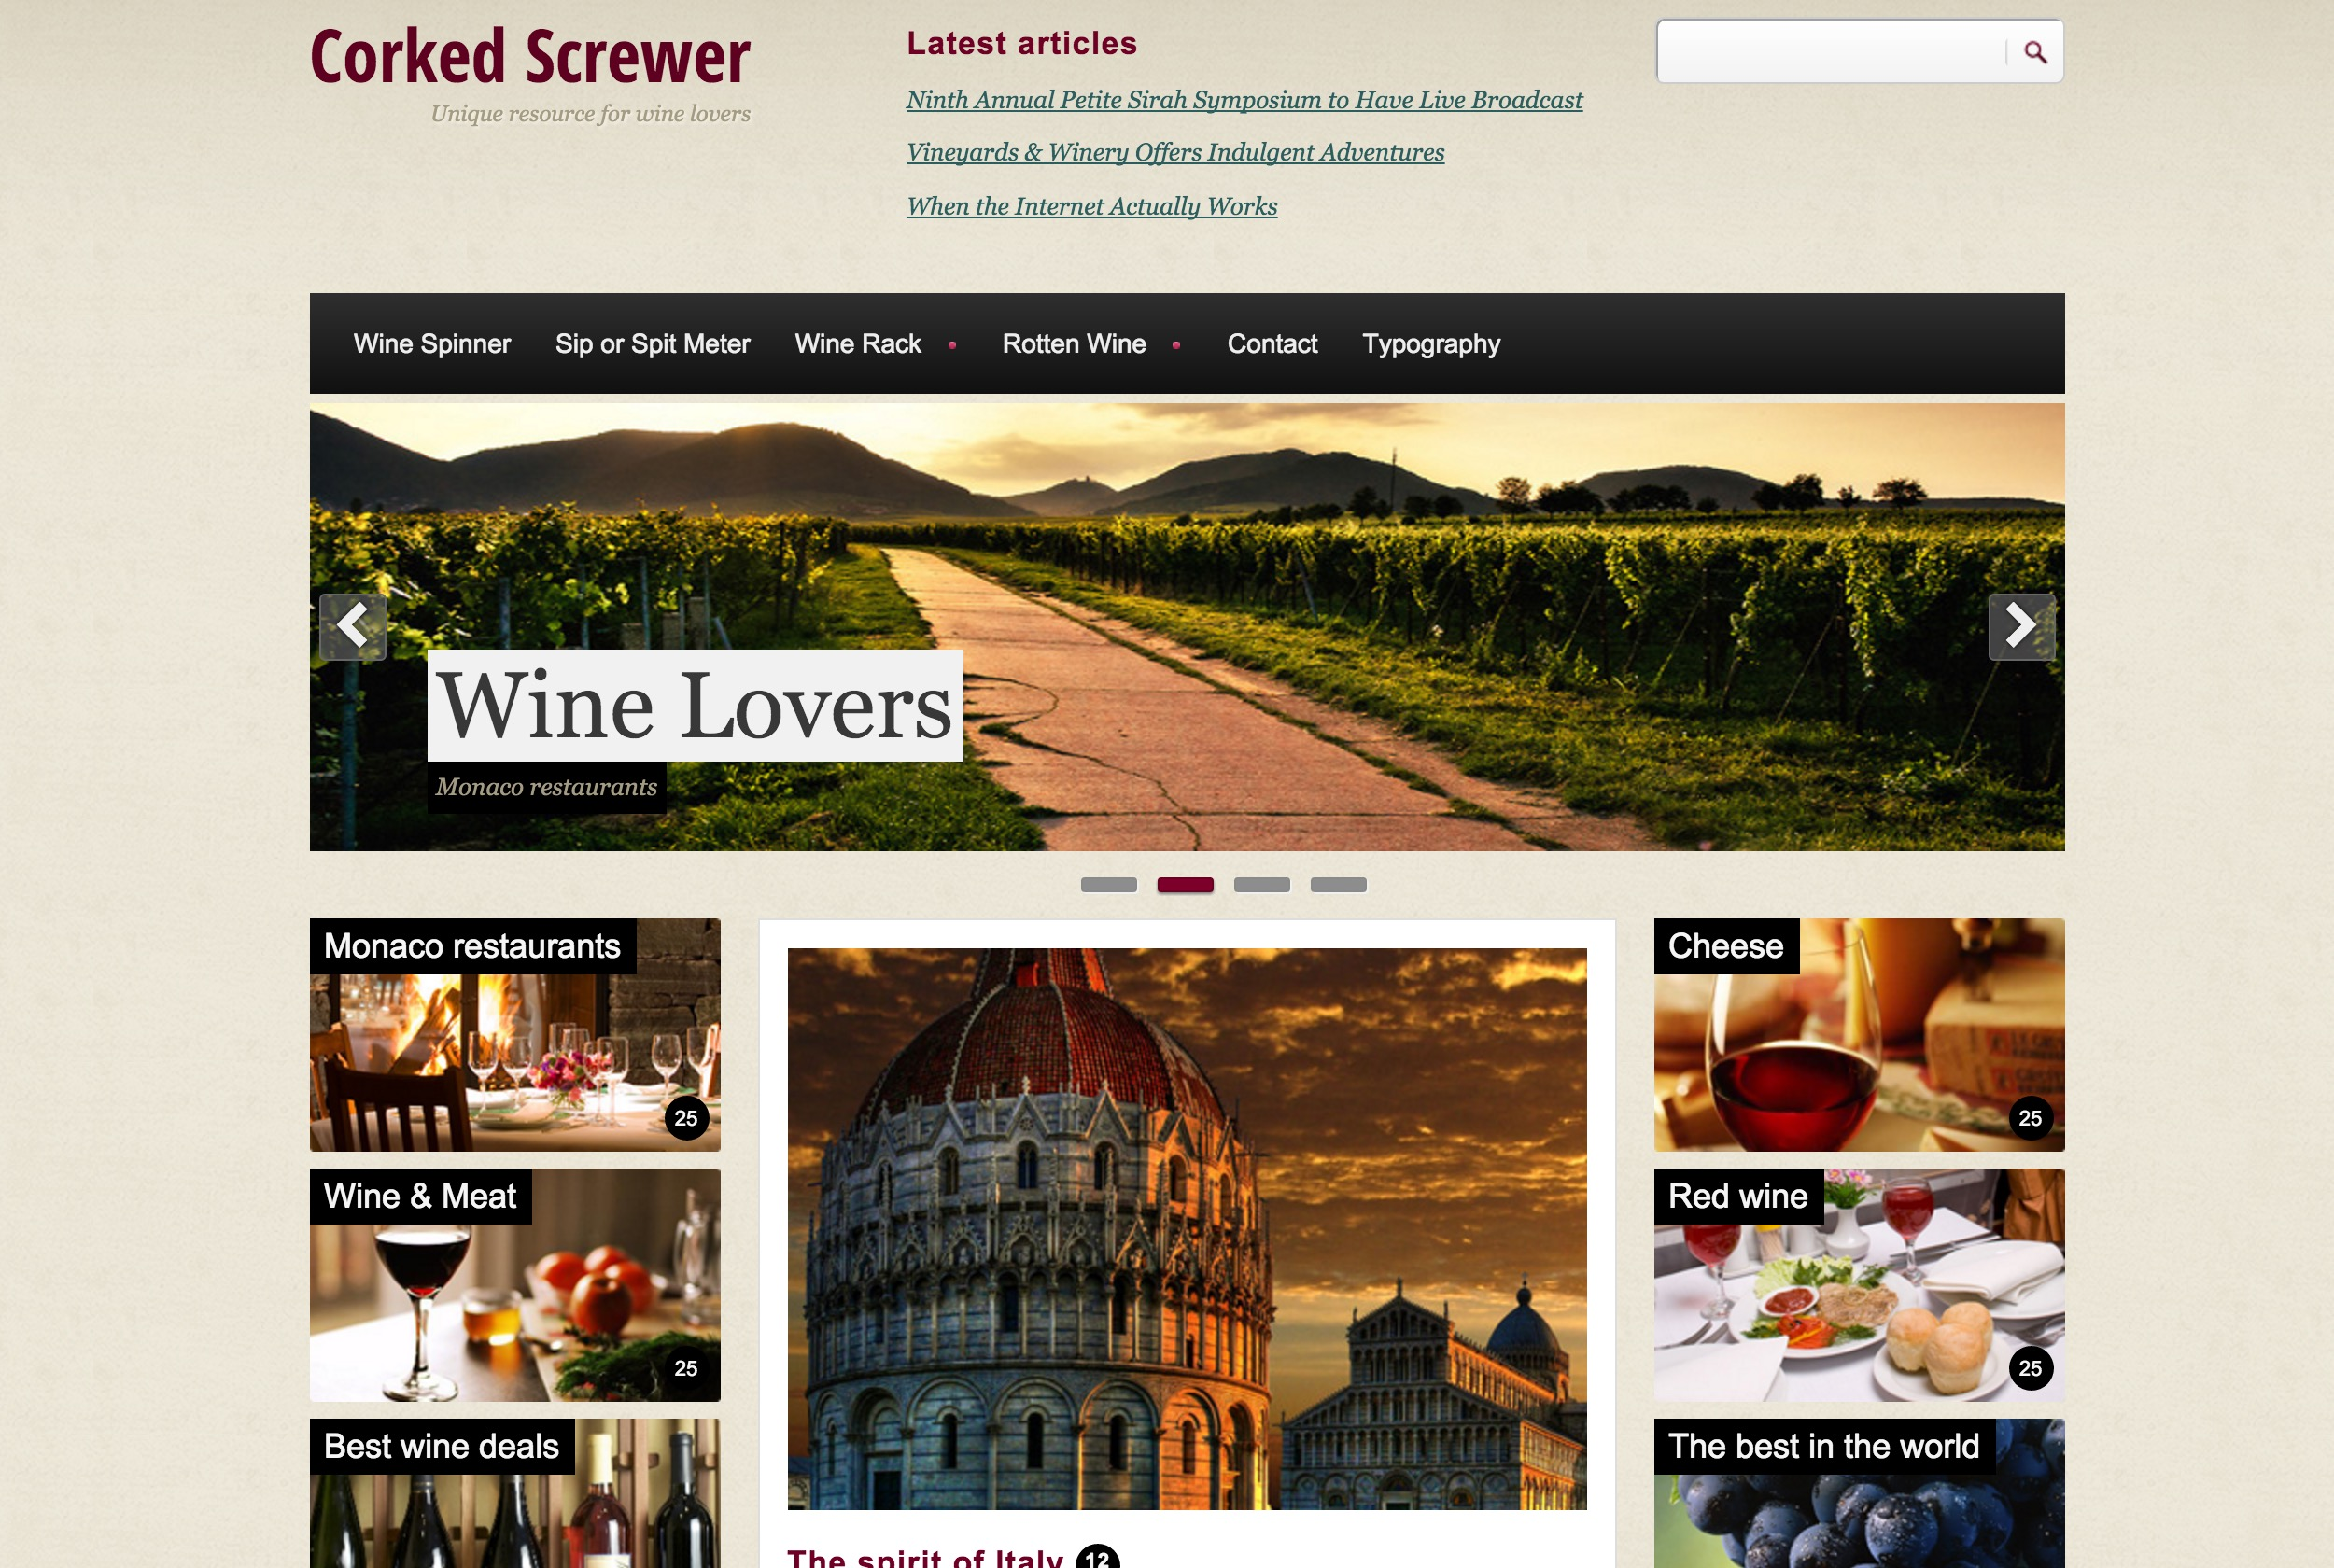 The Corked Screwer